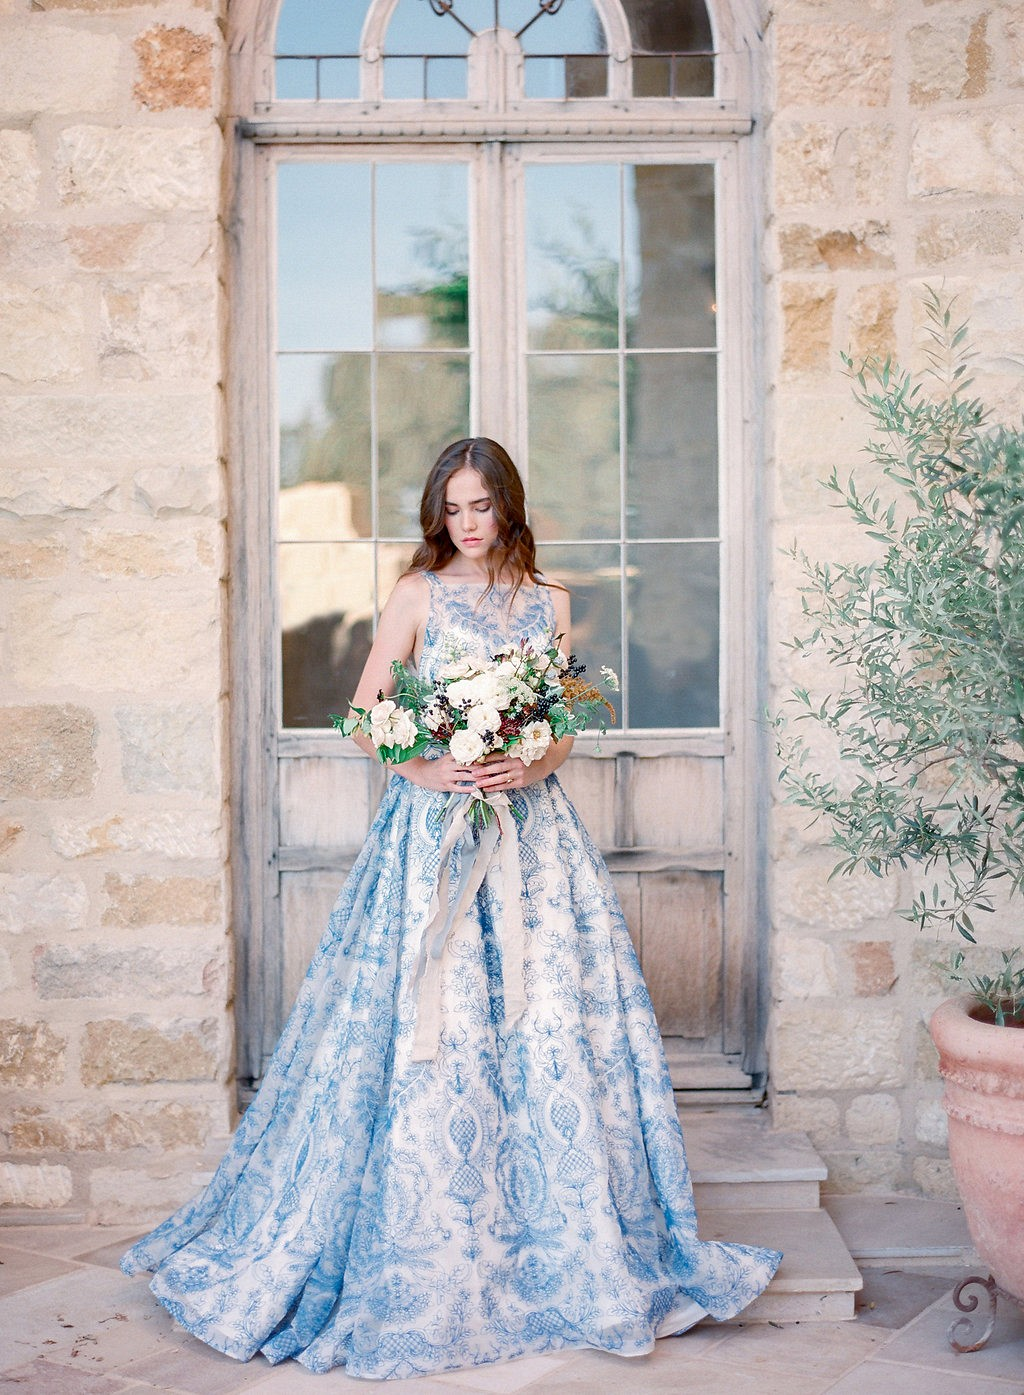 nontraditional wedding gown in blue by shannon von escher